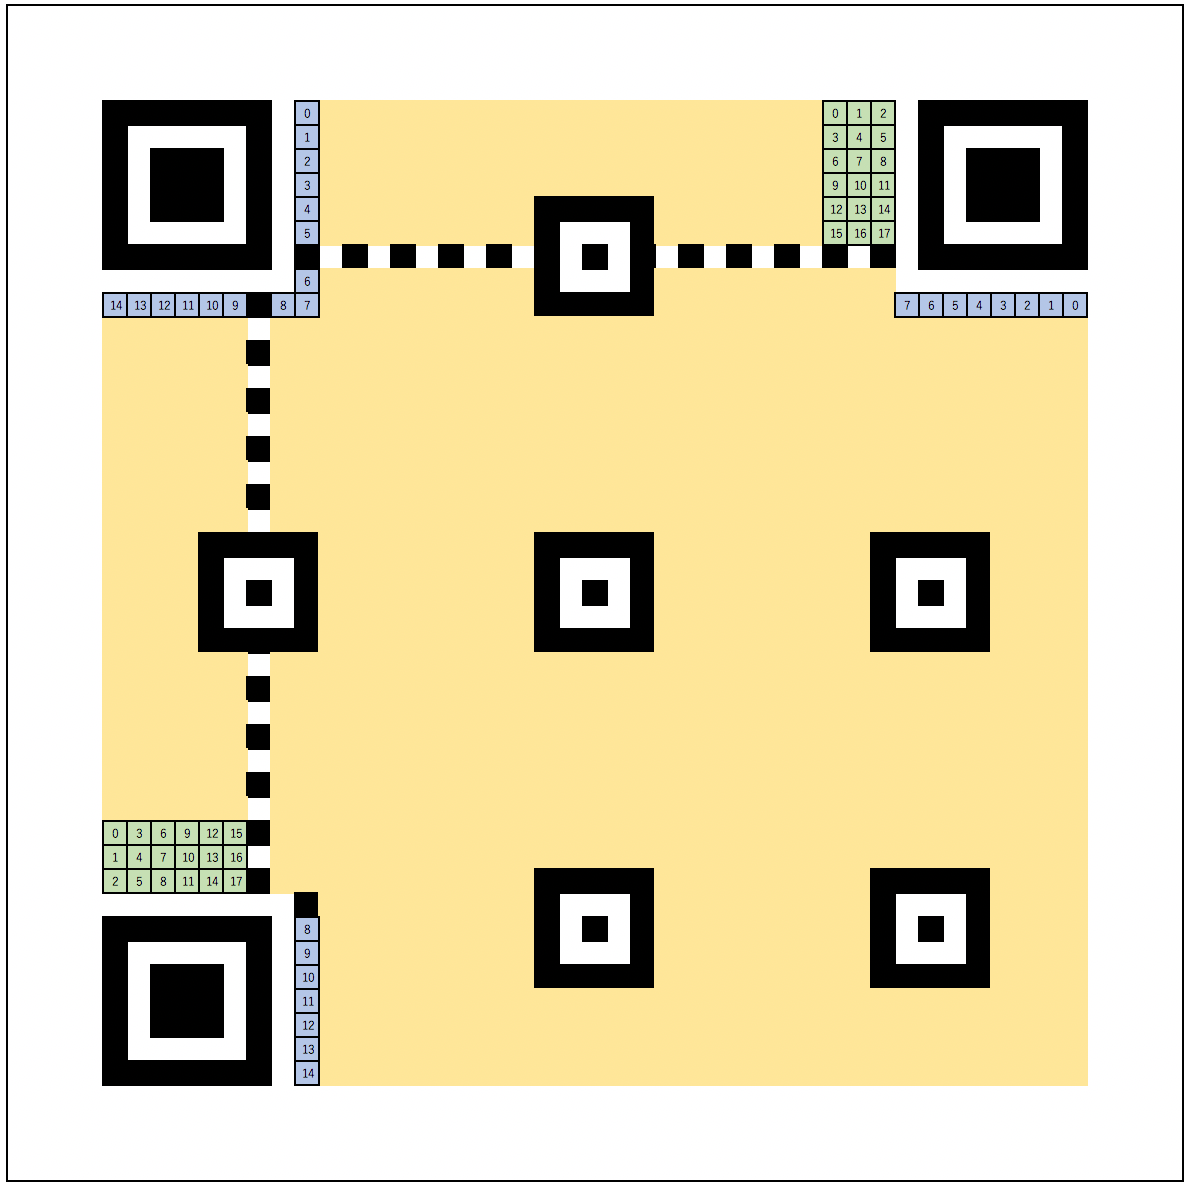 qrcode_format.png